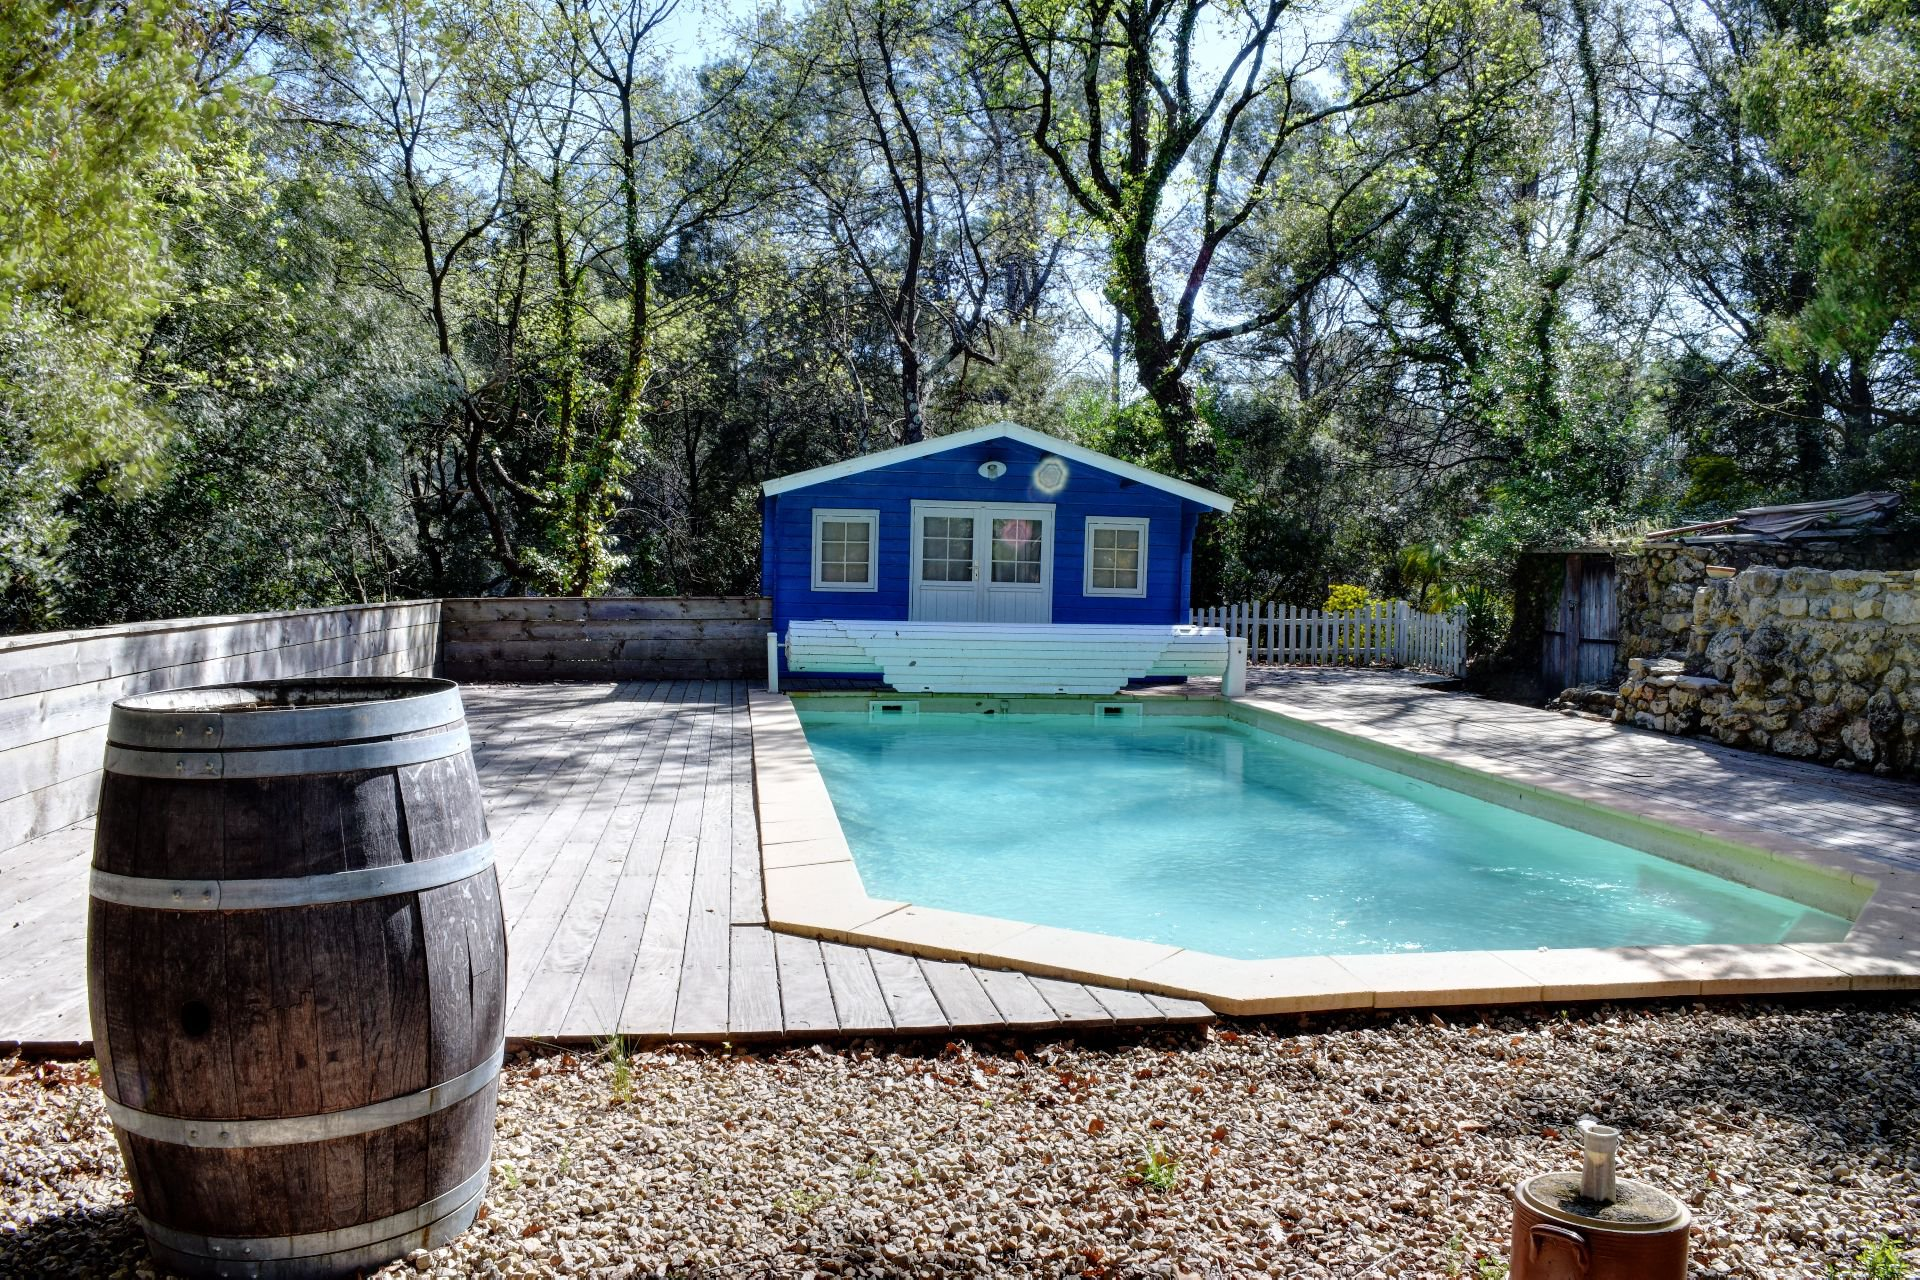 Pool area with pool house, Lorgues, Var, Provence